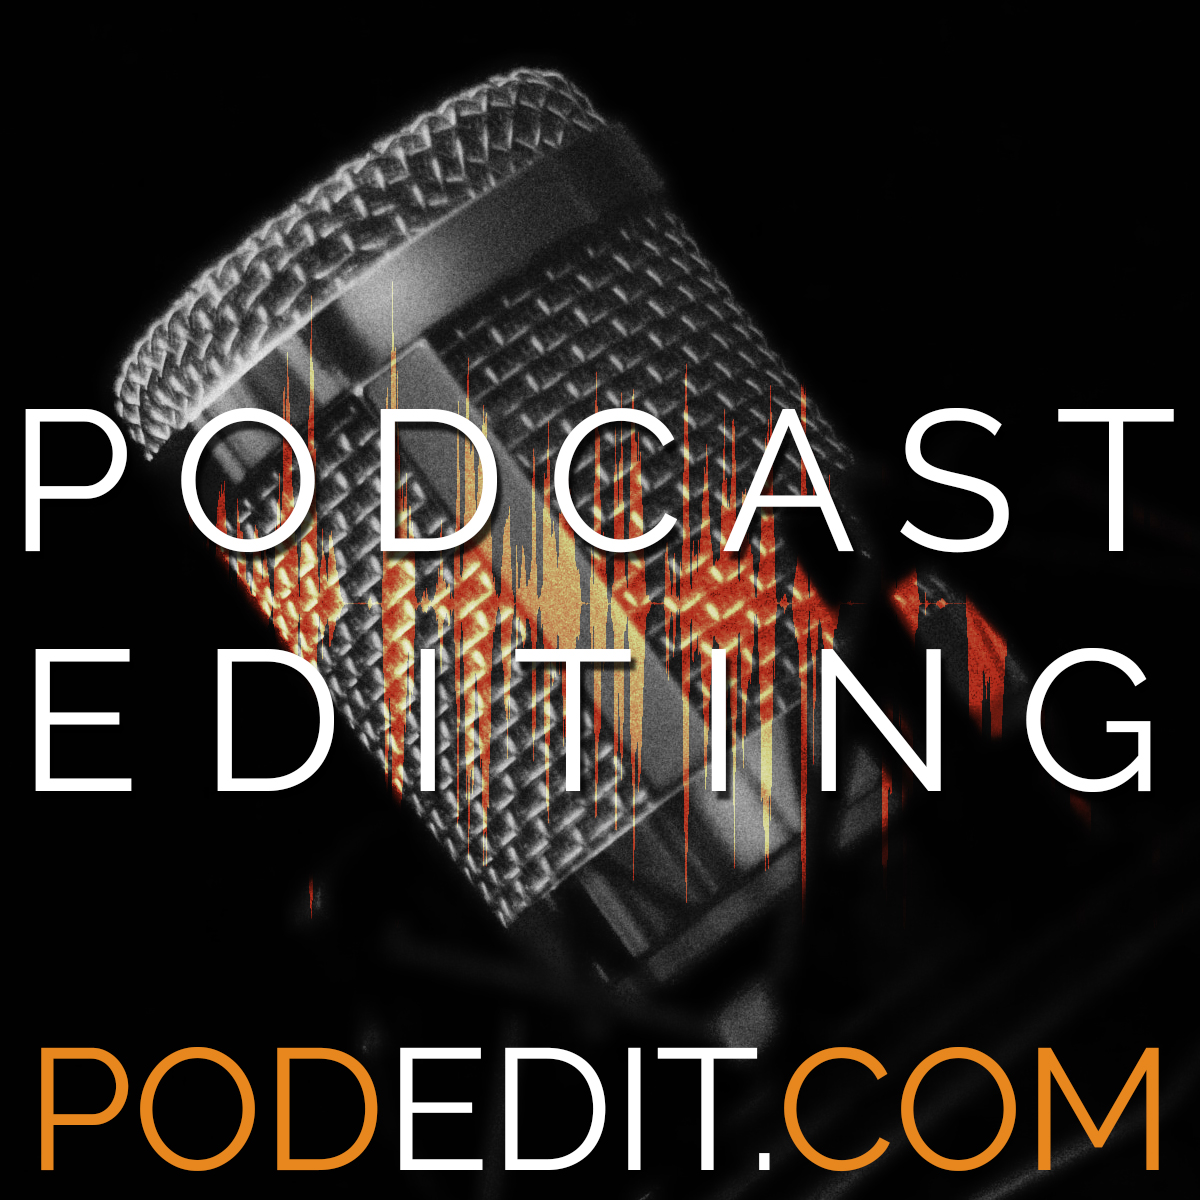 Podcast Editing Image